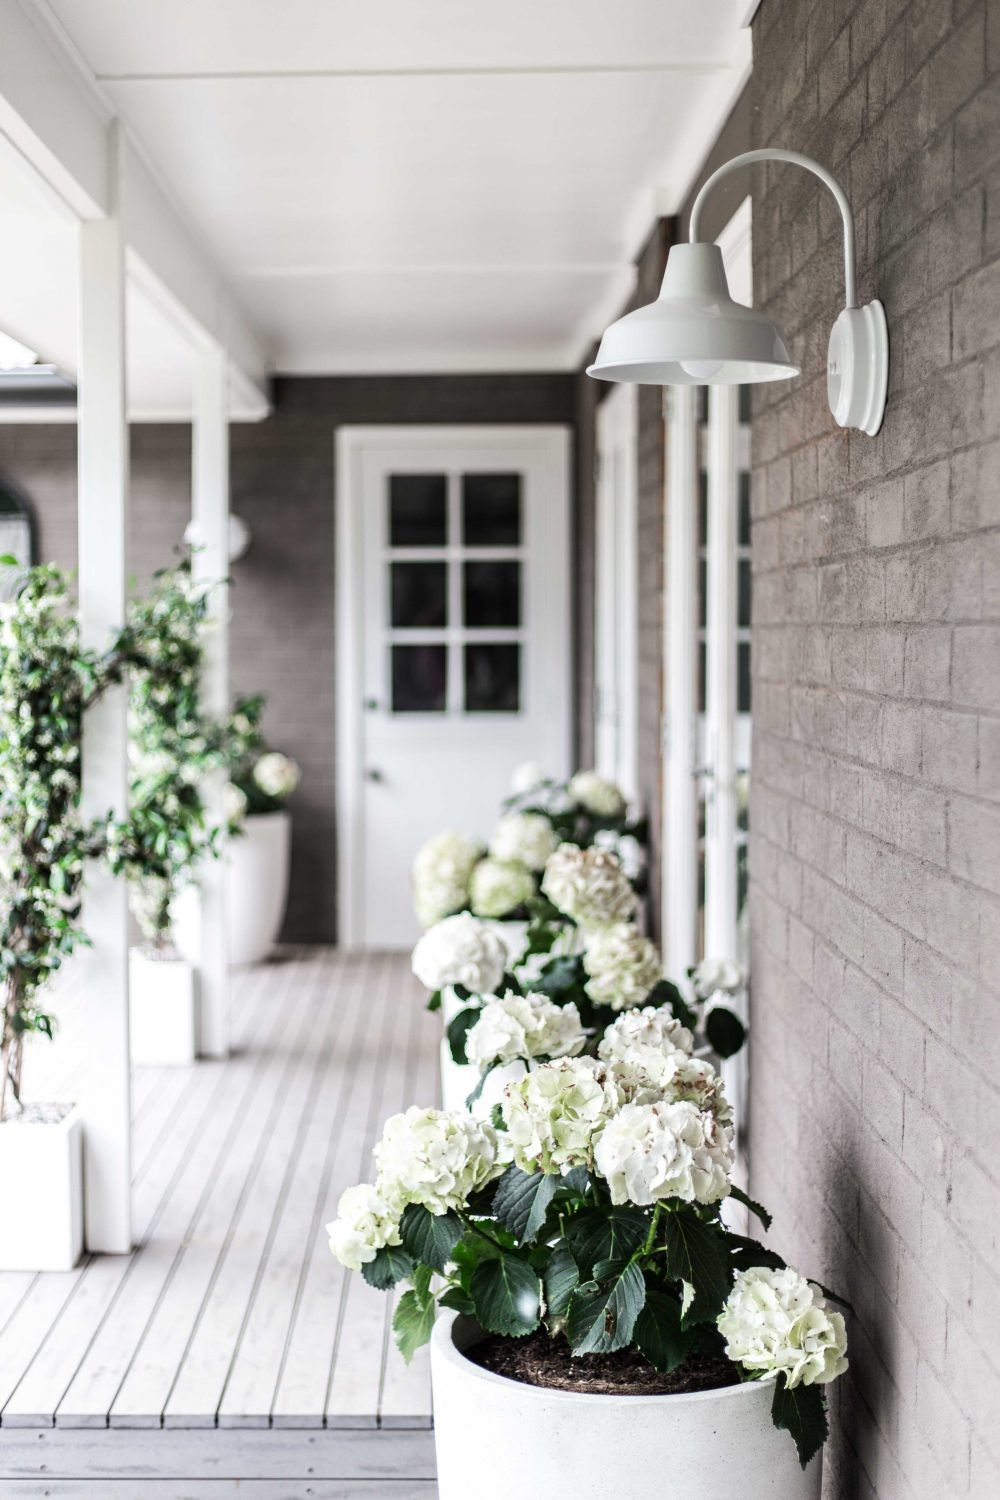 Our New Exterior Barn Lights Front porch plants